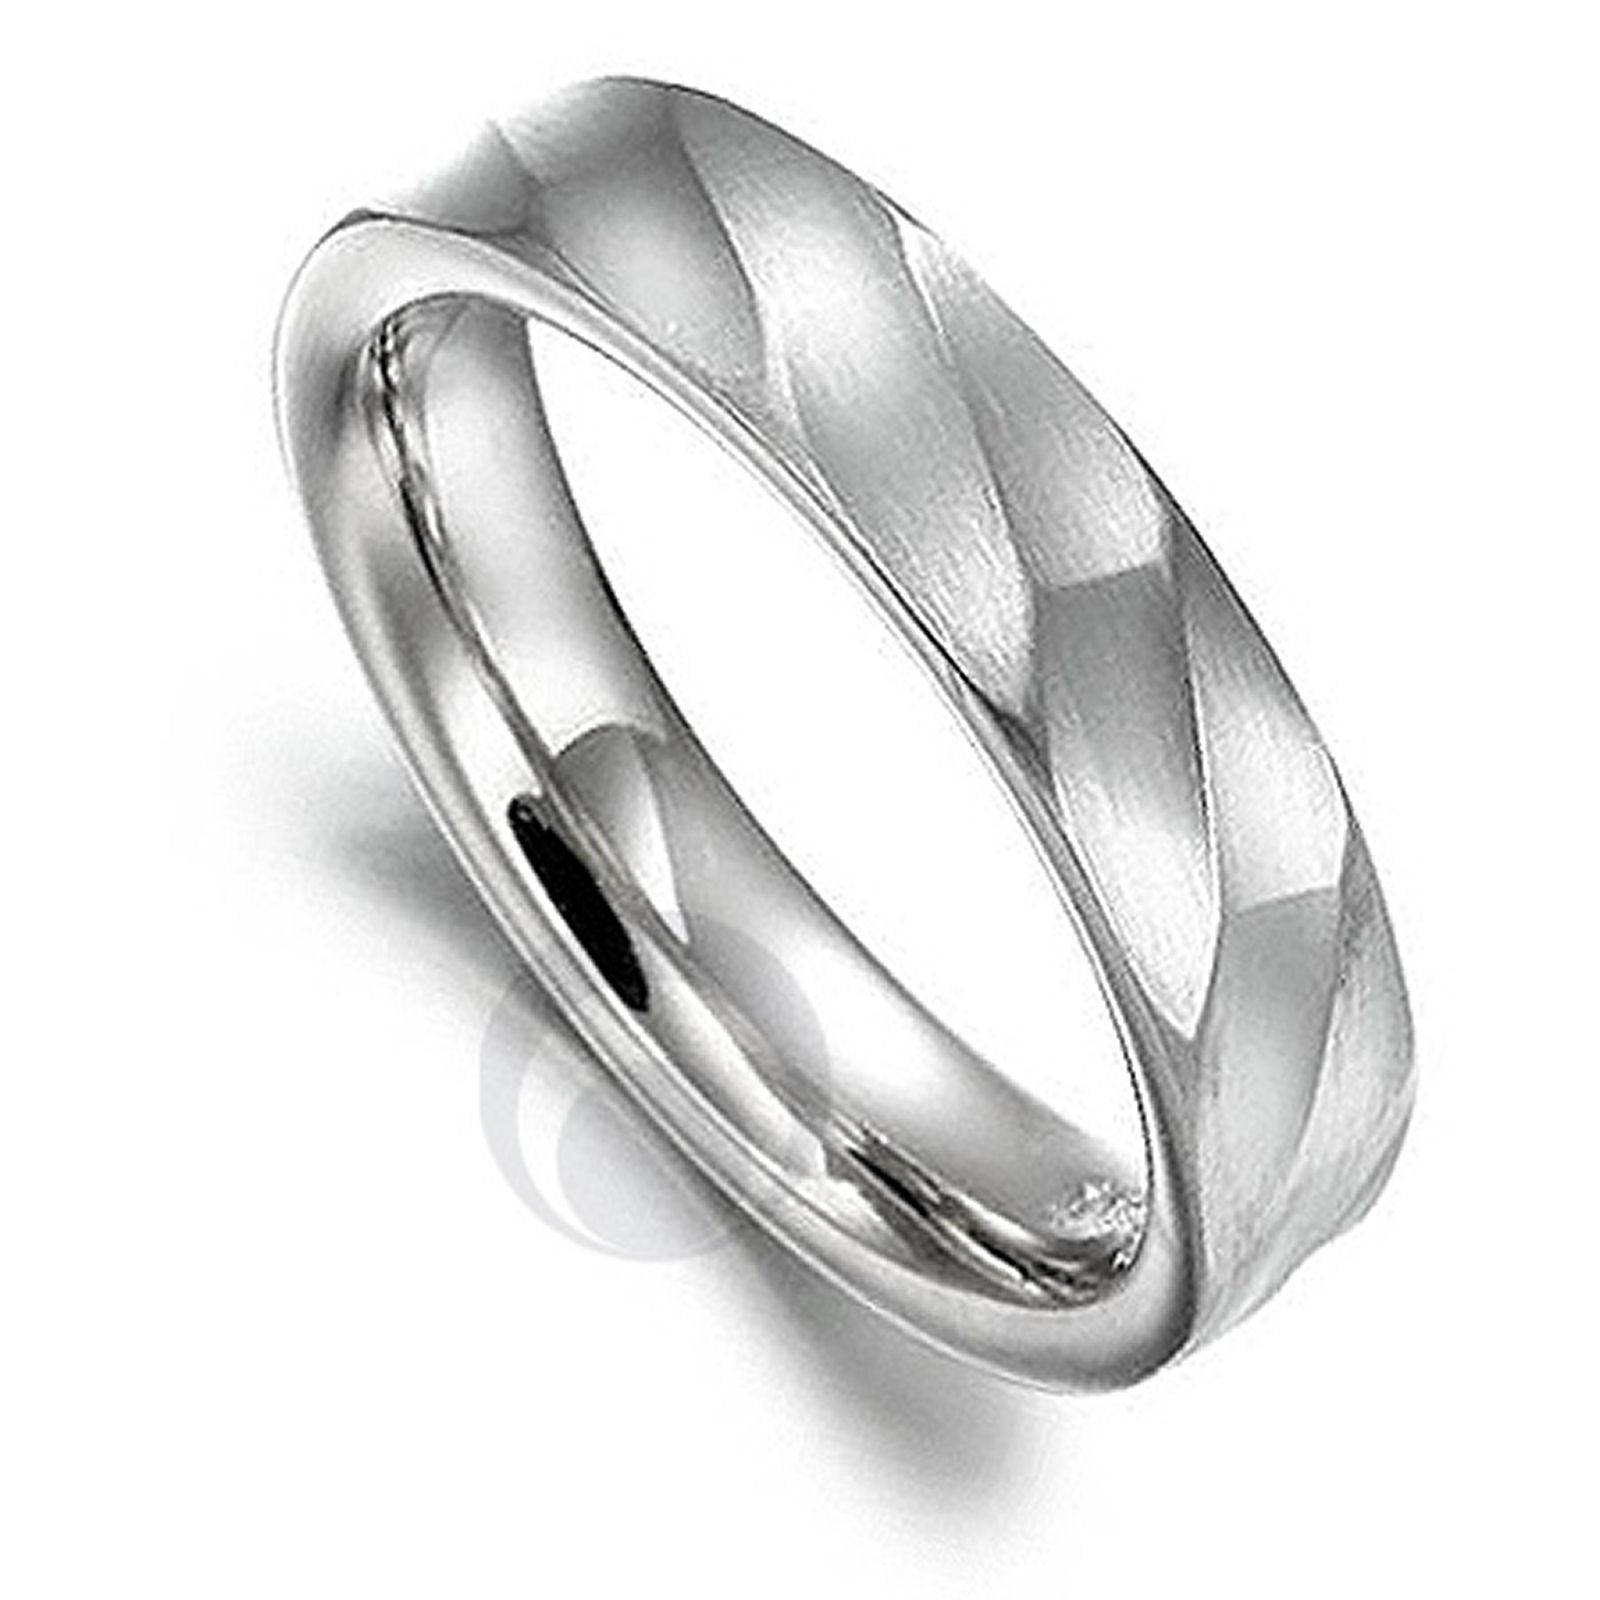 page jewelry unique lbbjtdpxvkjtquhejqmq ring with wife s rings mens wifes wedding fingerprint